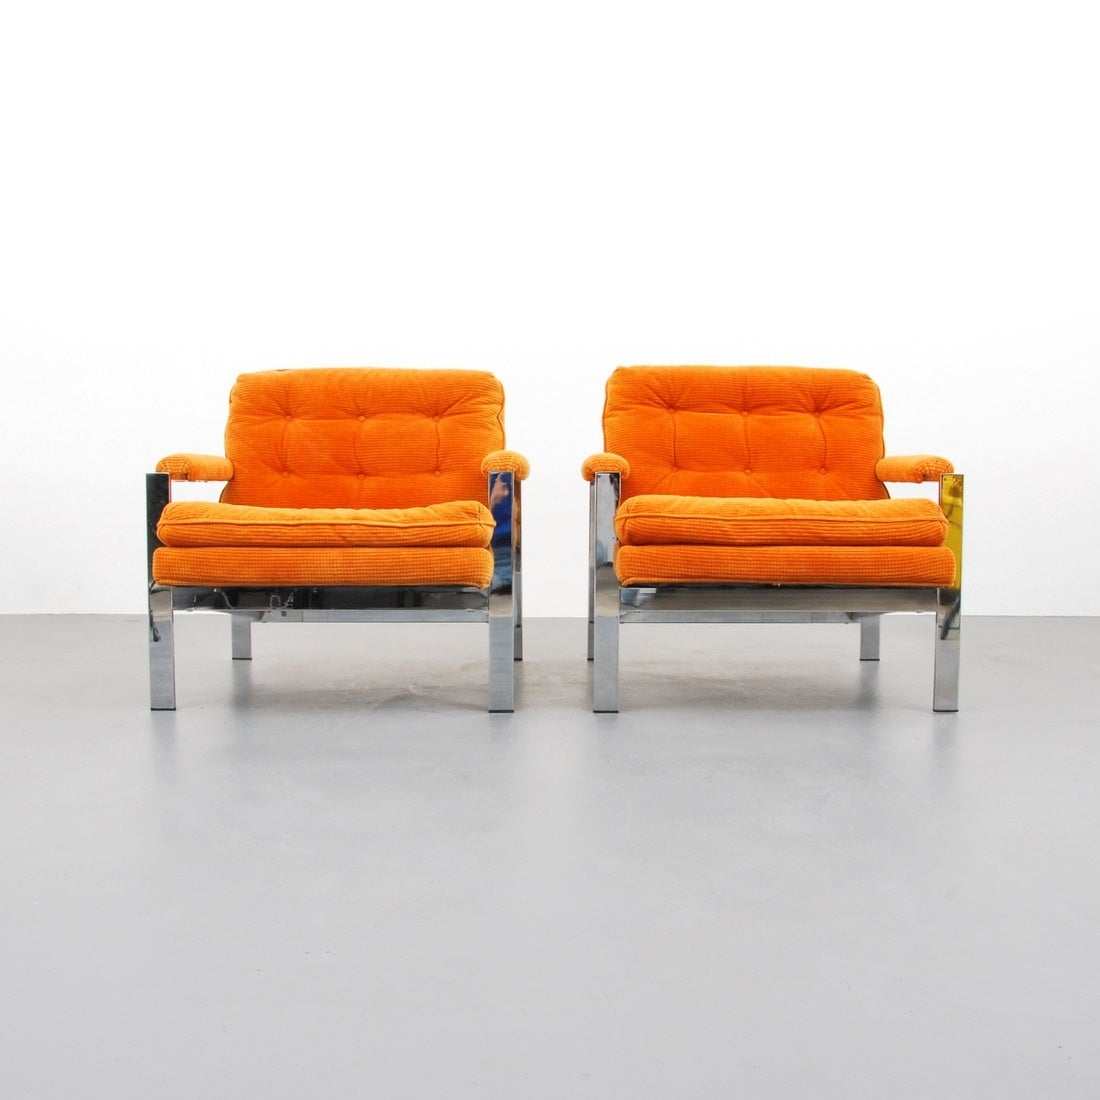 Pair of lounge chairs by Milo Baughman,USA, 1970s.